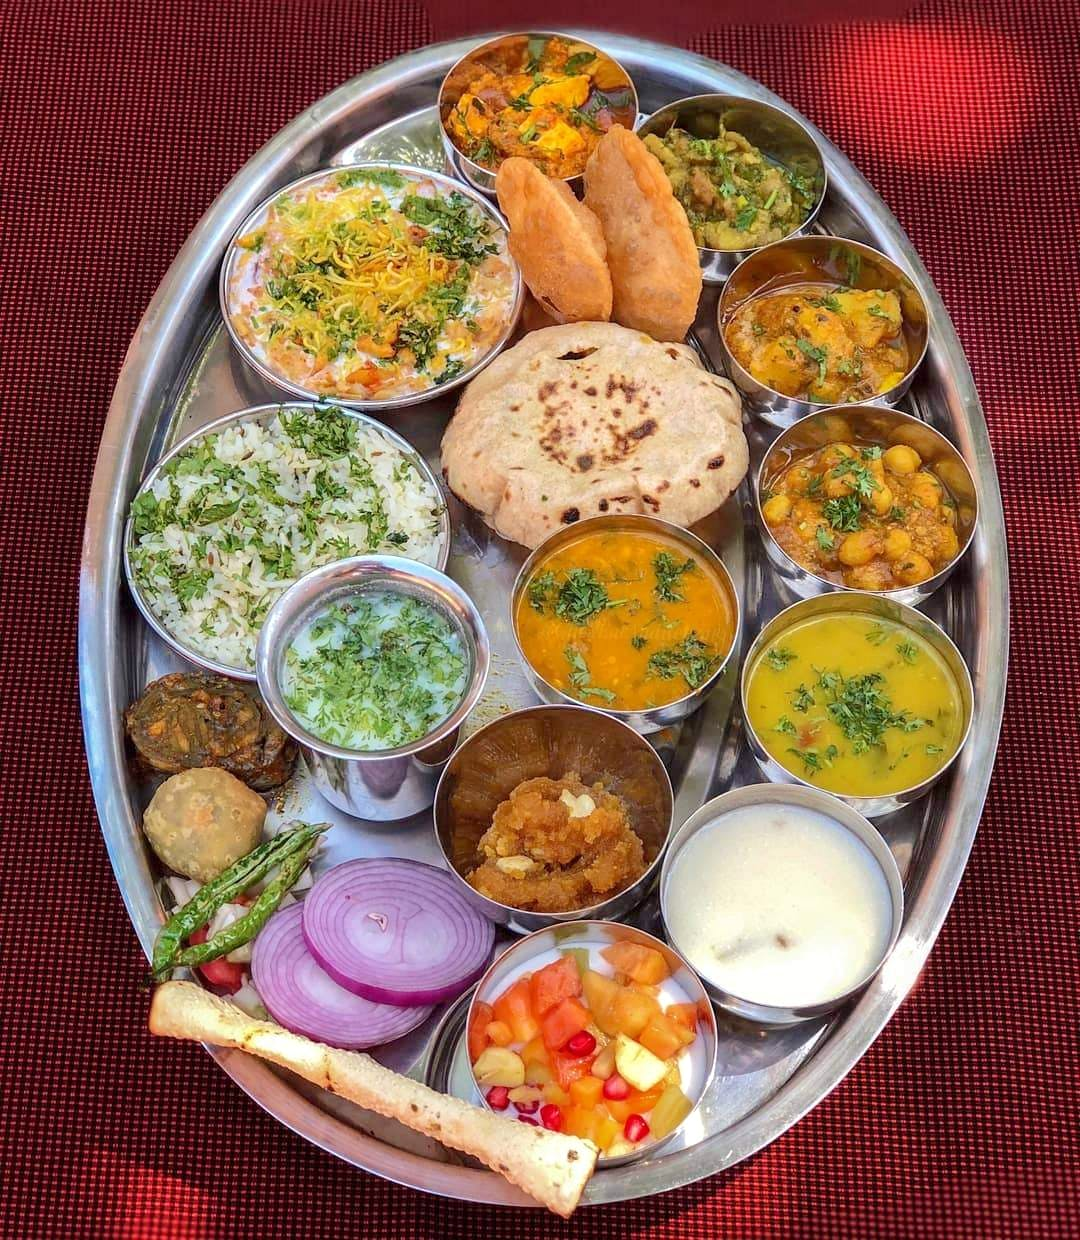 Dish,Food,Cuisine,Meal,Ingredient,Vegetarian food,Lunch,Comfort food,Indian cuisine,Produce